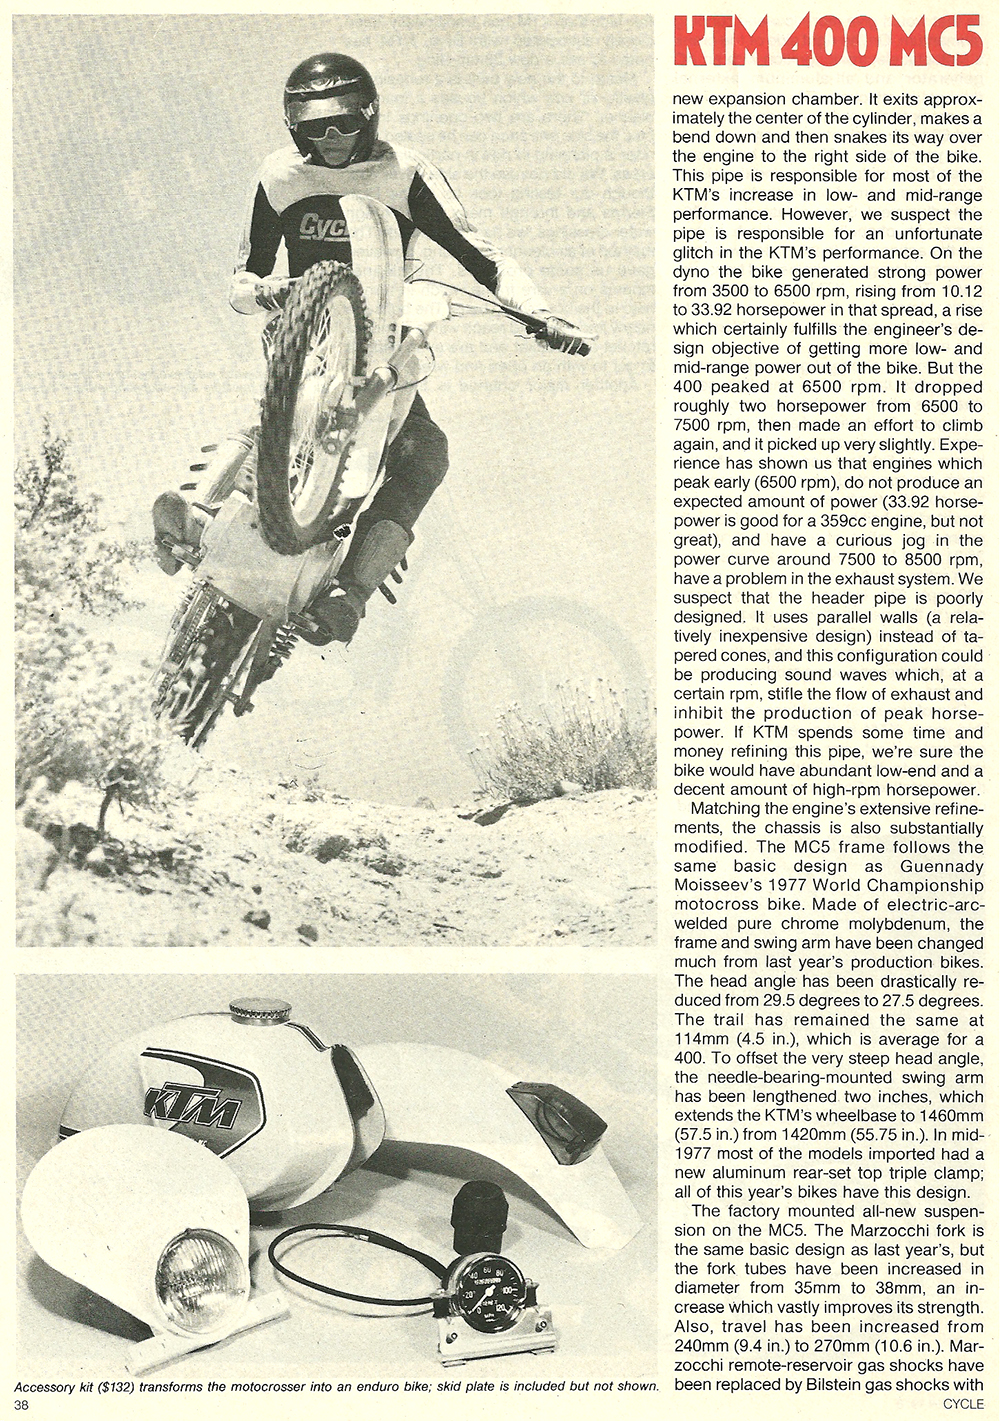 1978 KTM 400 MC5 road test 05.jpg